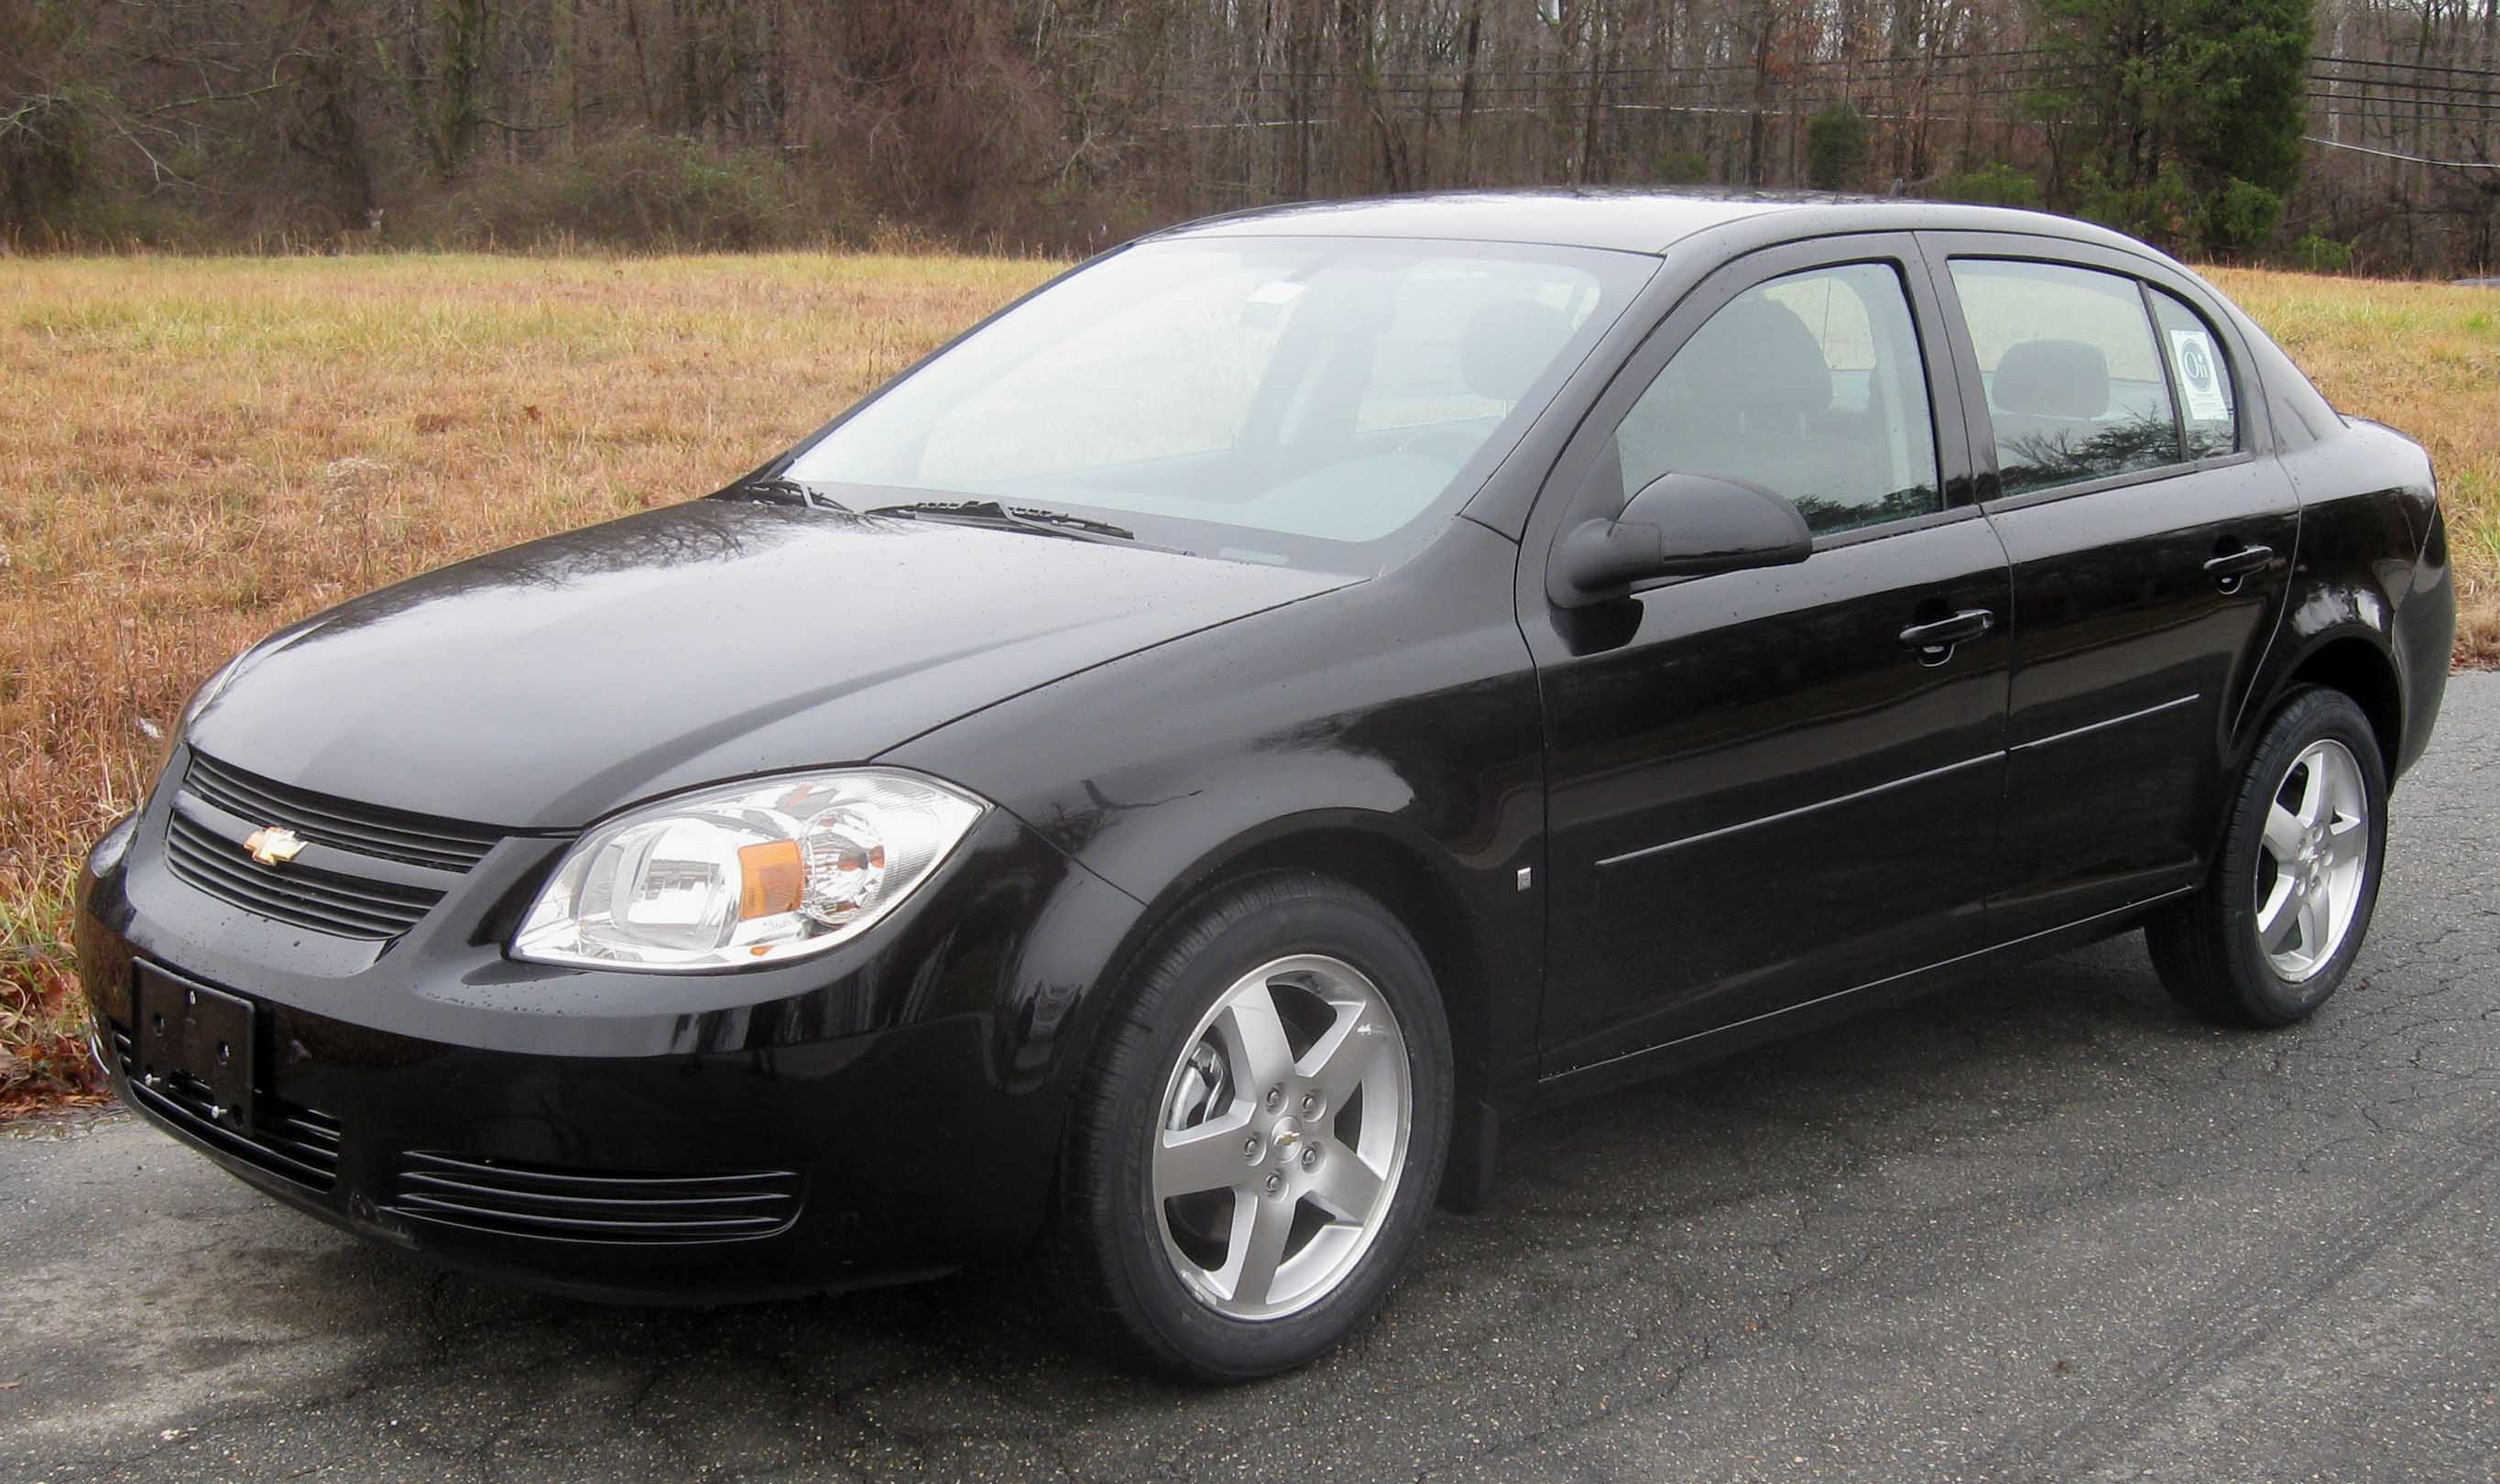 2007 chevy cobalt lt sedan engine. Cars Review. Best American Auto & Cars Review